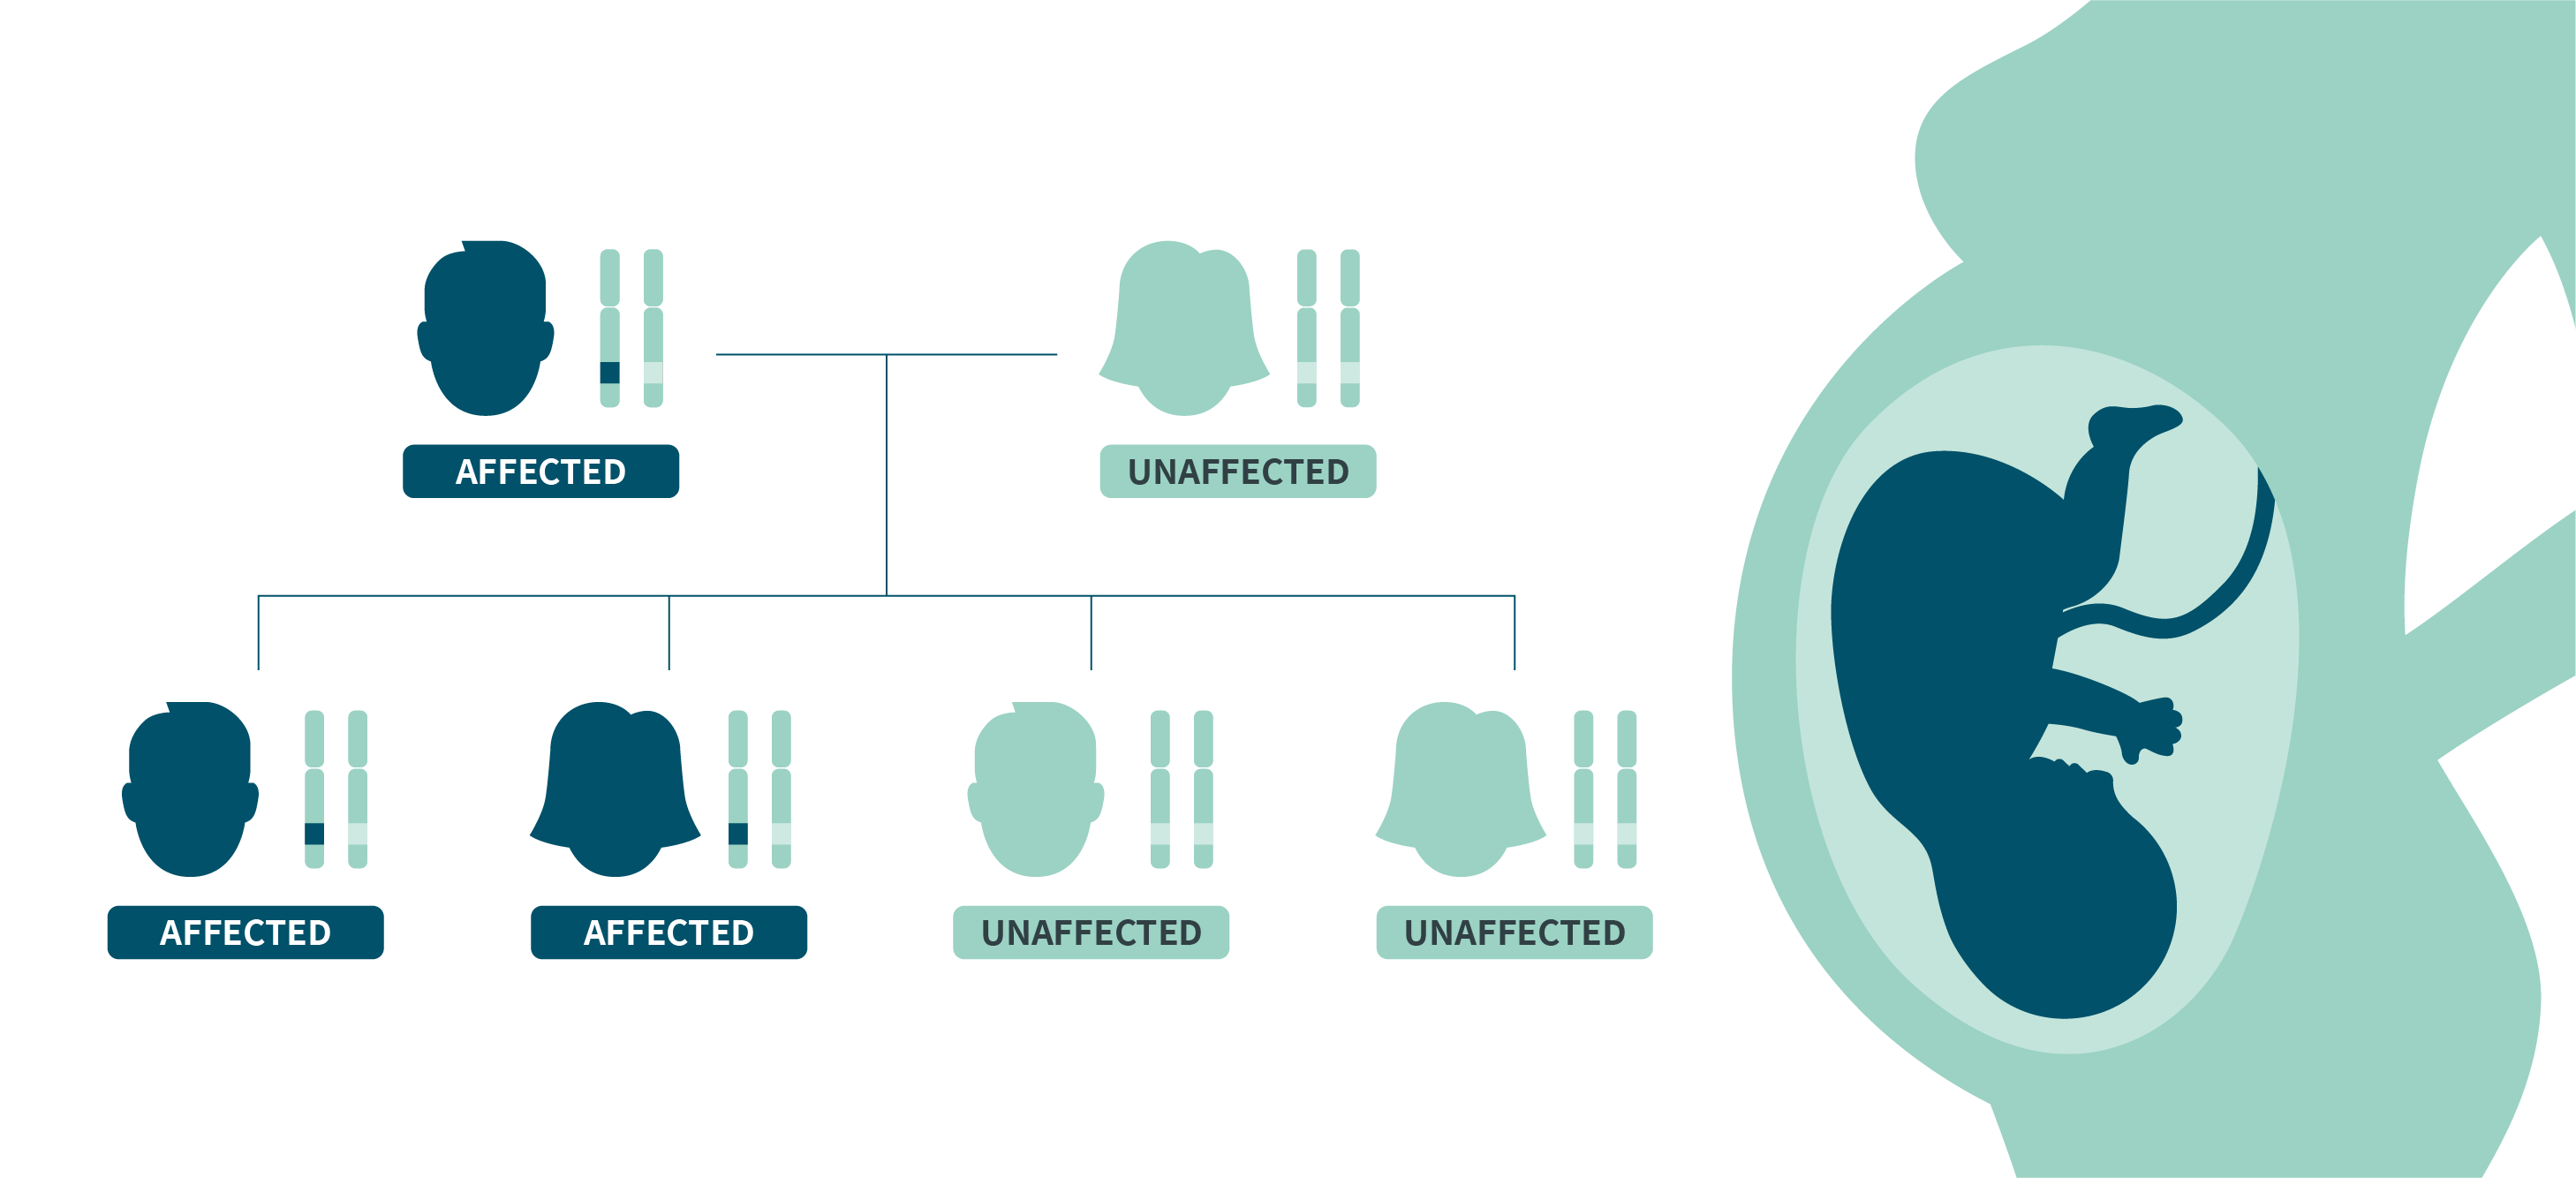 A family tree showing an autosomal dominant inheritance pattern.